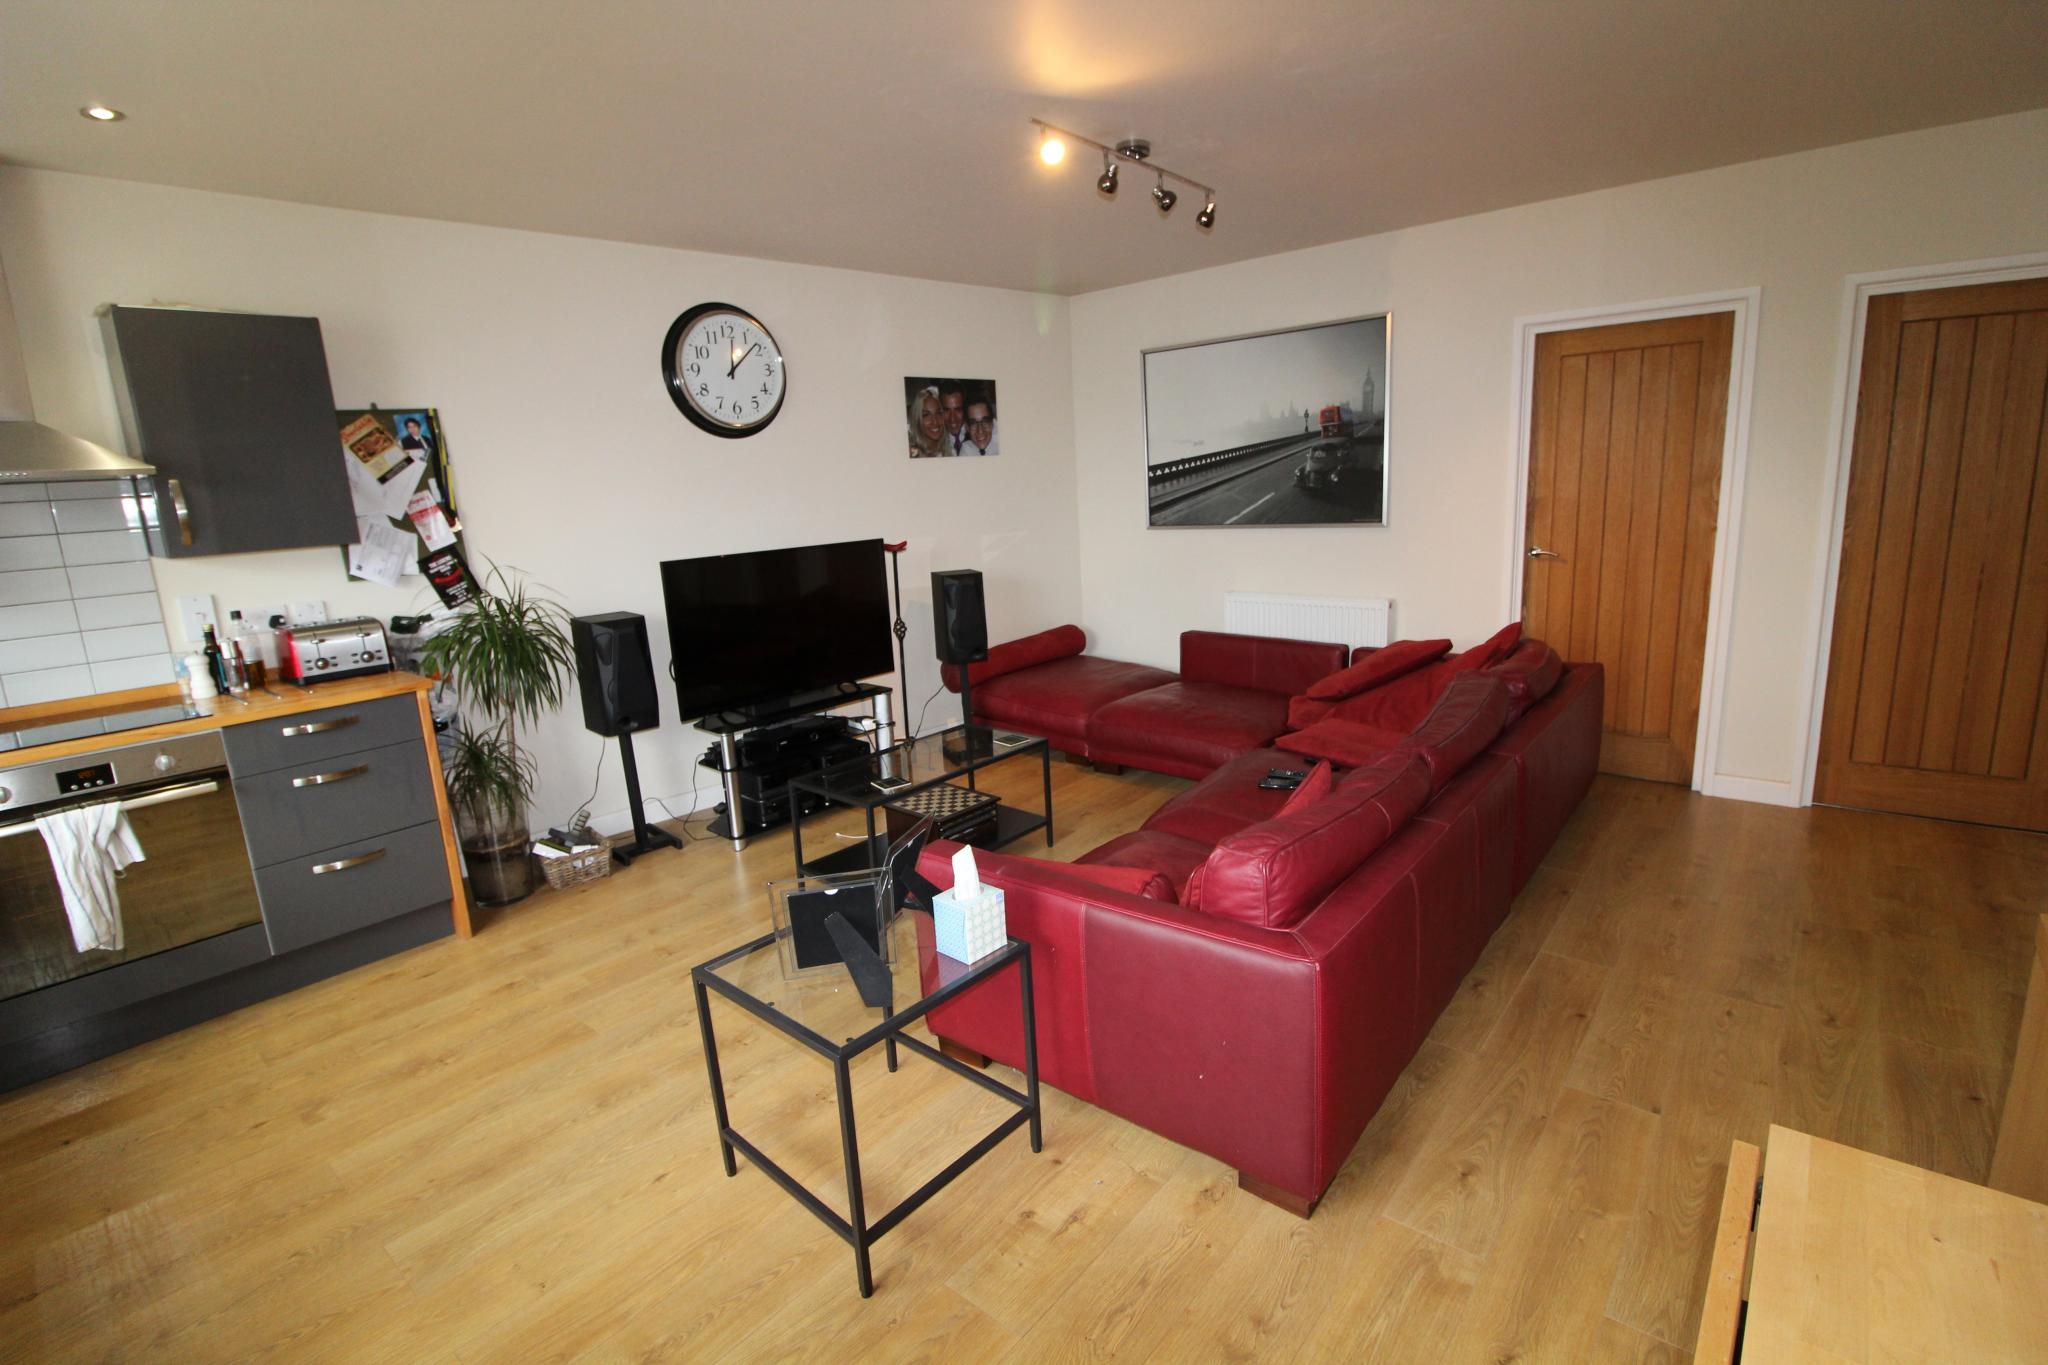 2 bedroom apartment flat/apartment Let Agreed in Potters Bar - Property photograph